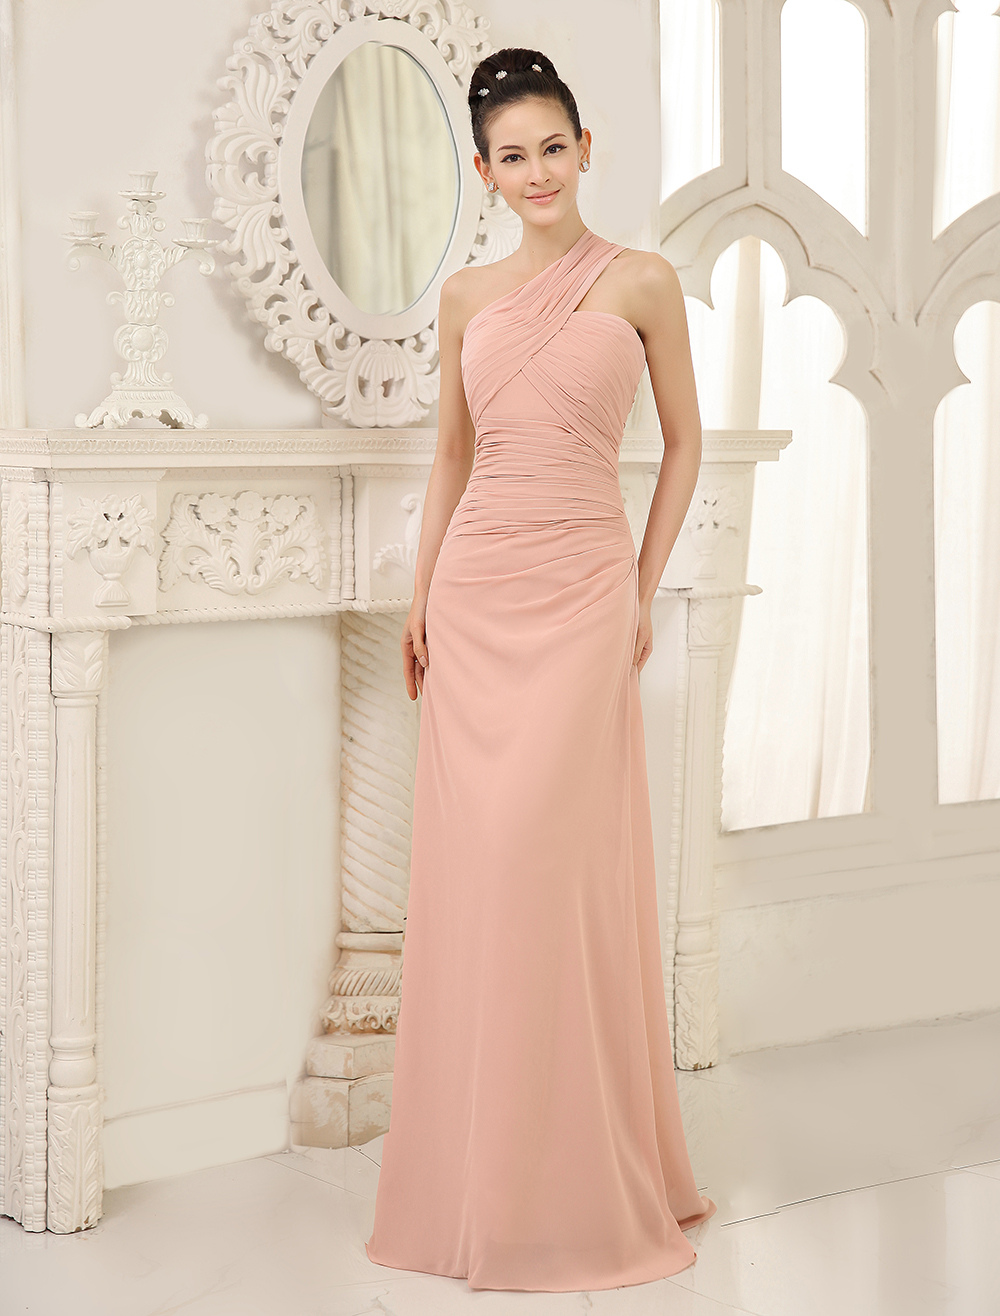 One Shoulder Bridesmaid Dresses Blush Pink Long Ruched Sleeveless Wedding Party Dress